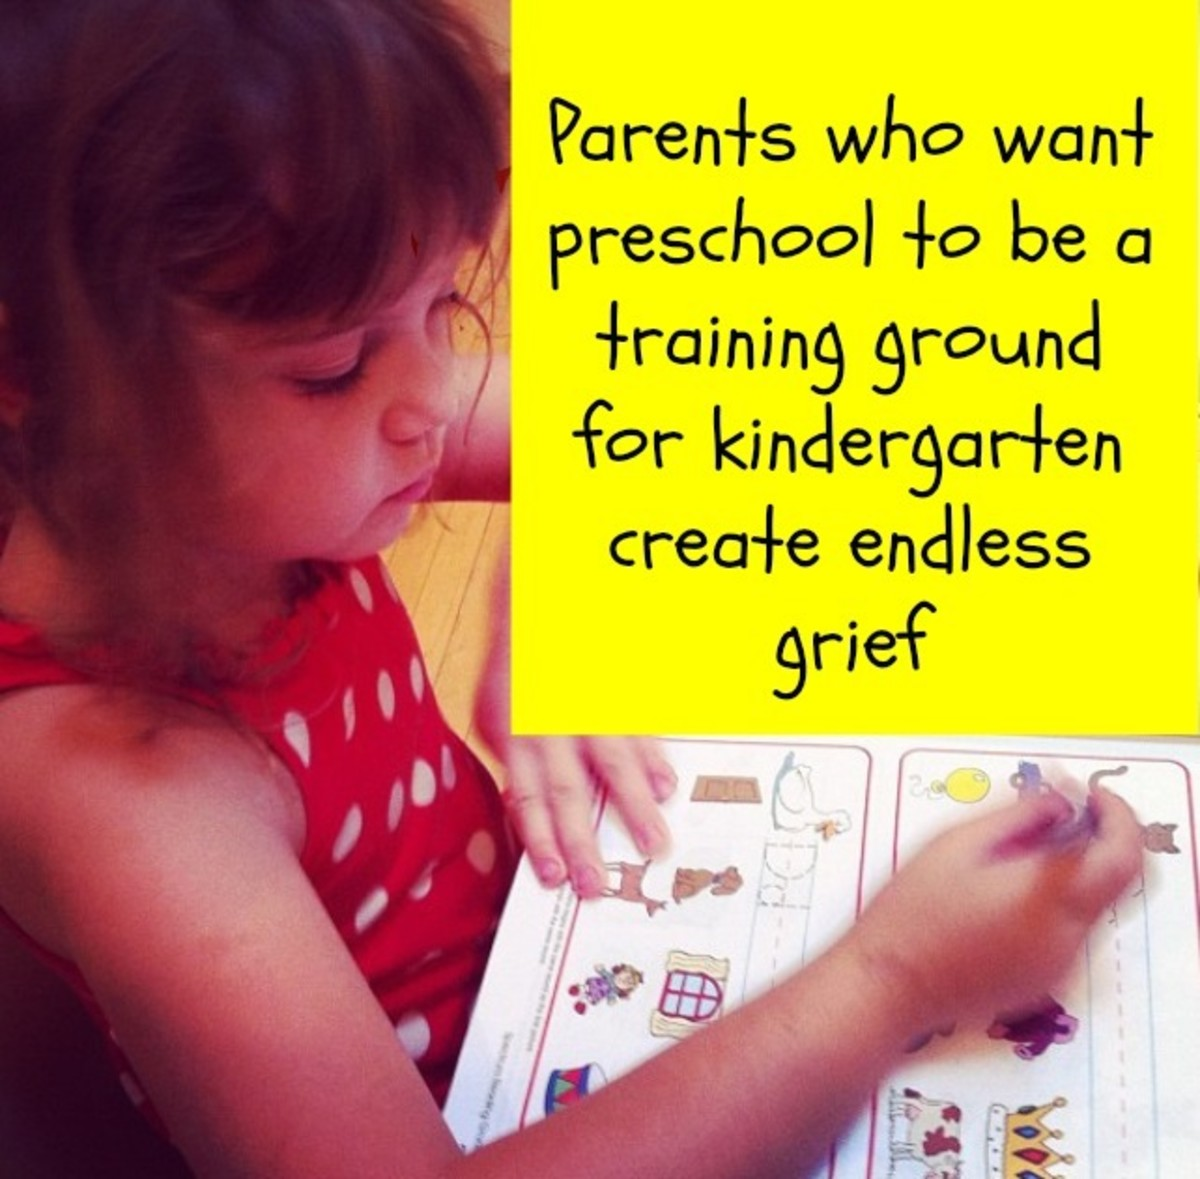 An outstanding preschool teacher wants to expand a child's world, not narrow it with kindergarten readiness skills.